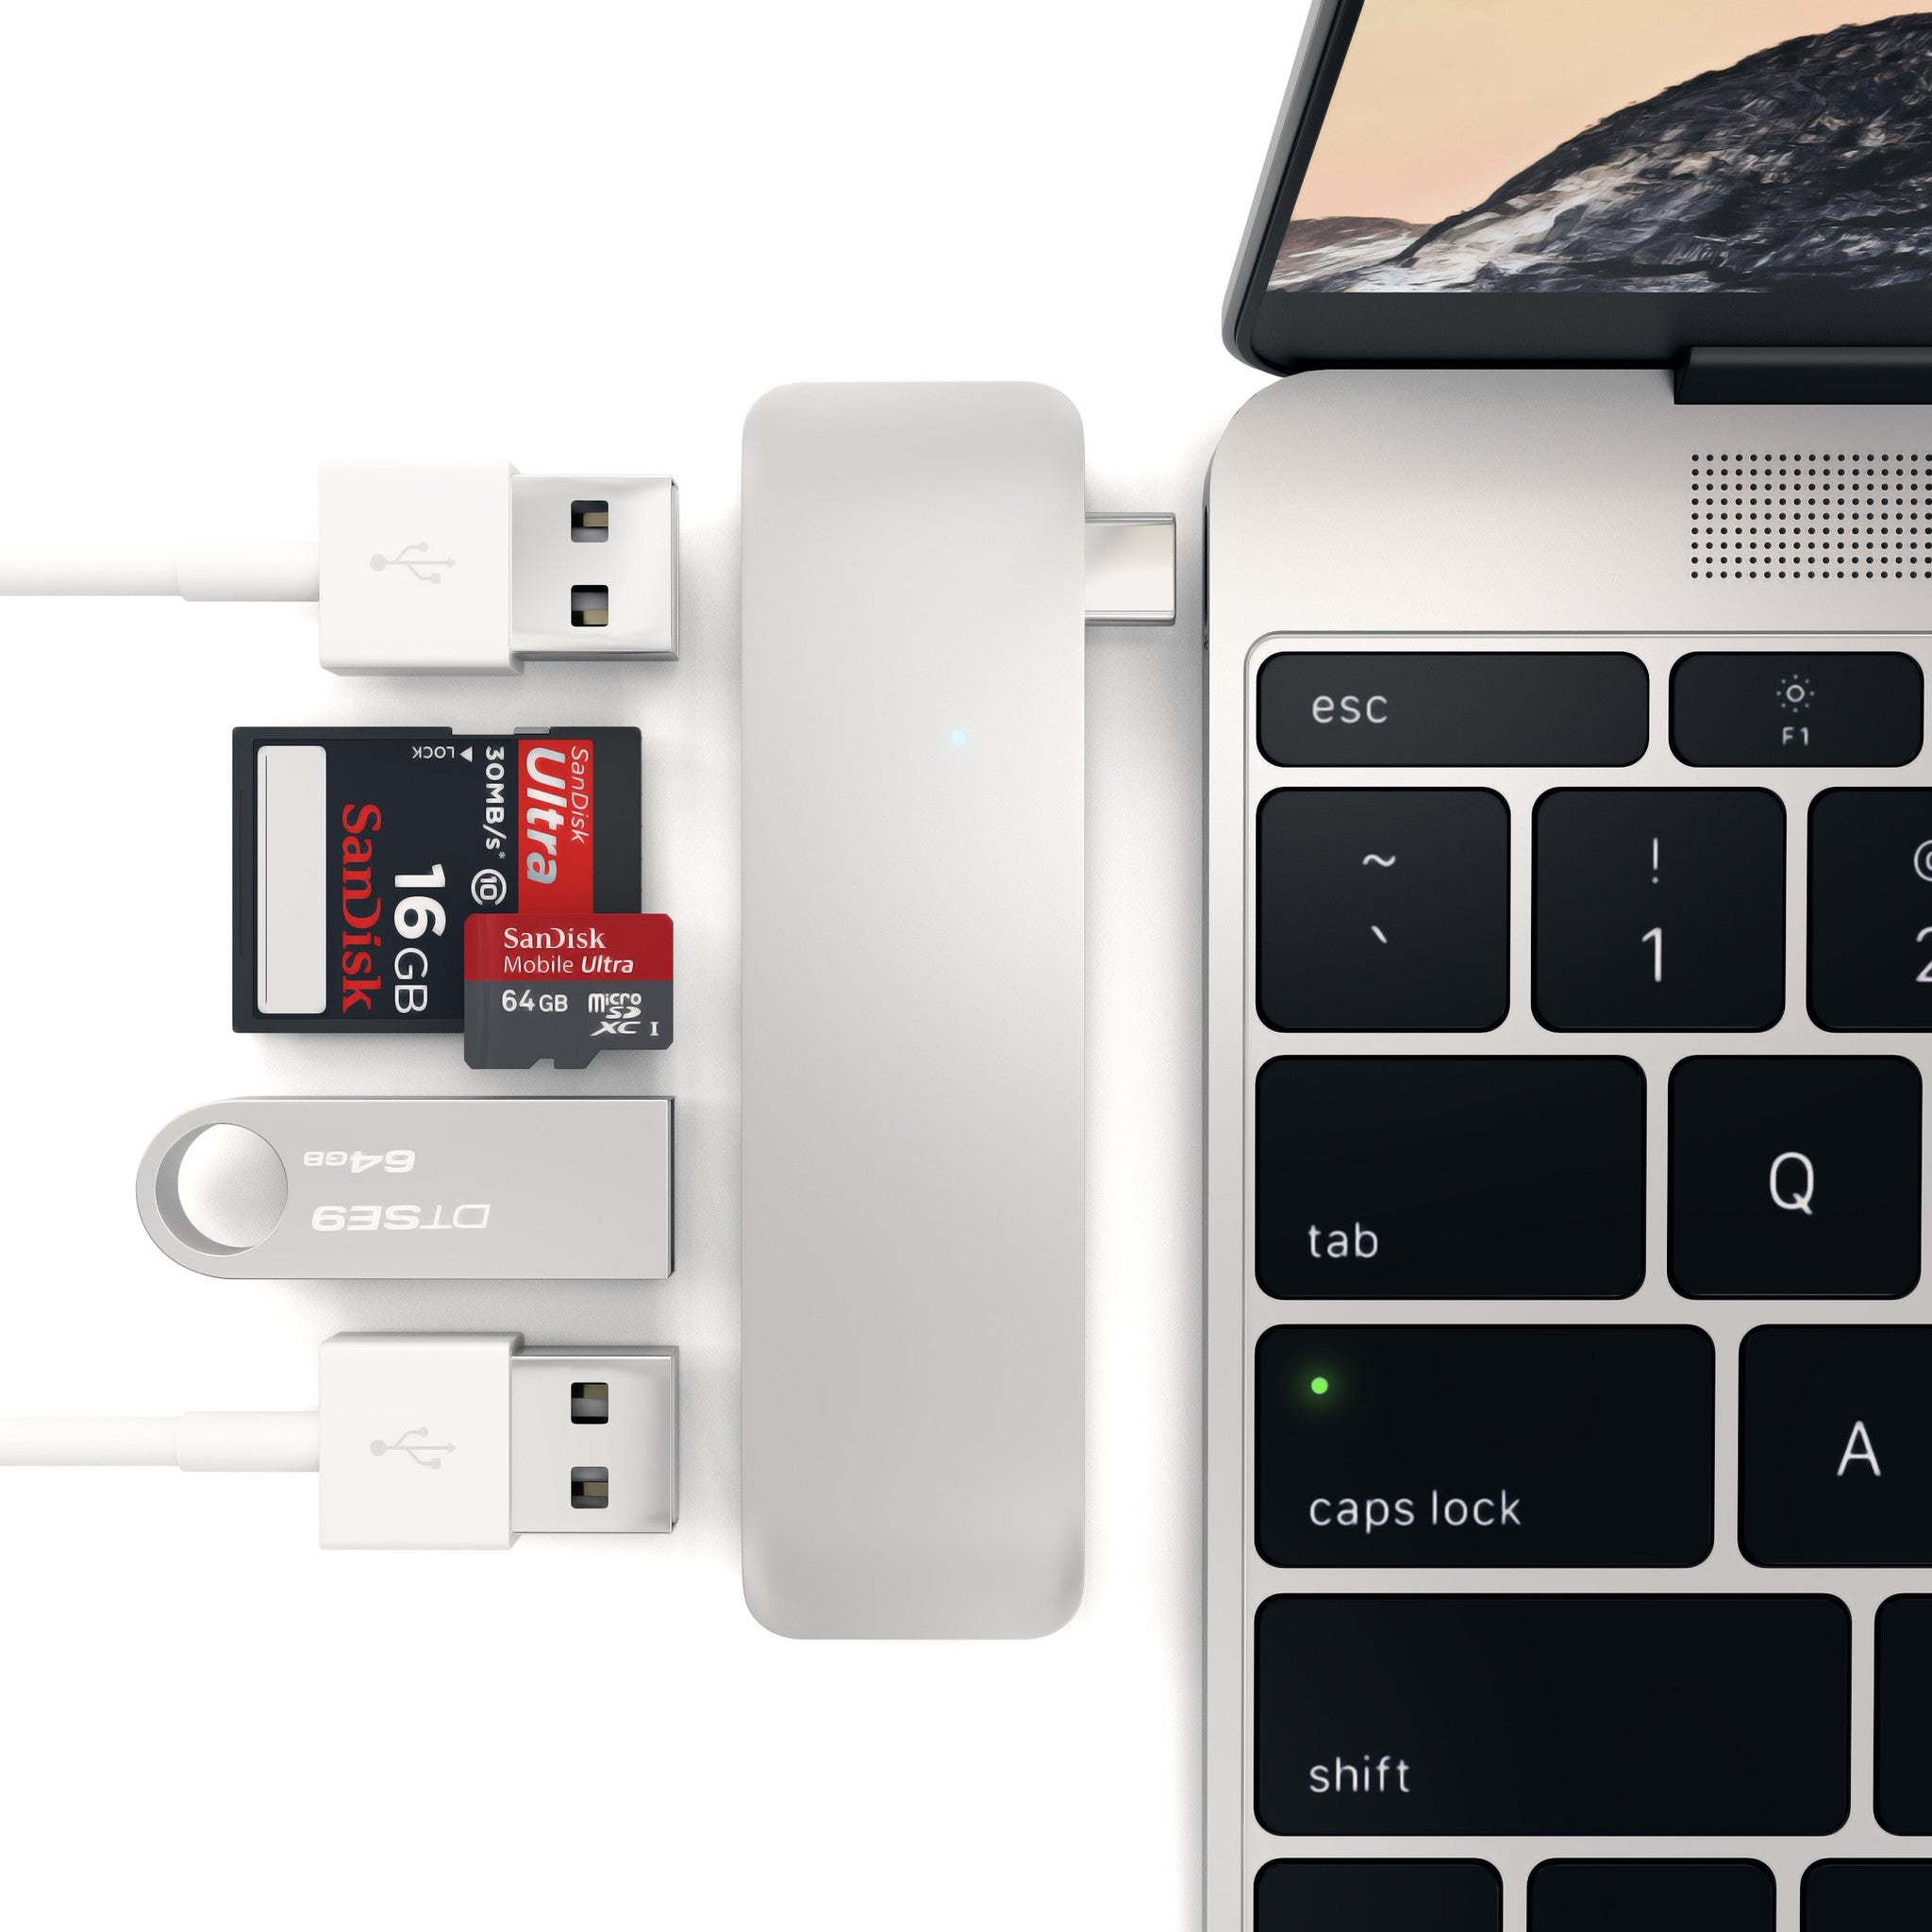 Thunderbolt 3/USB-C hub to USB 3.0/Card Reader